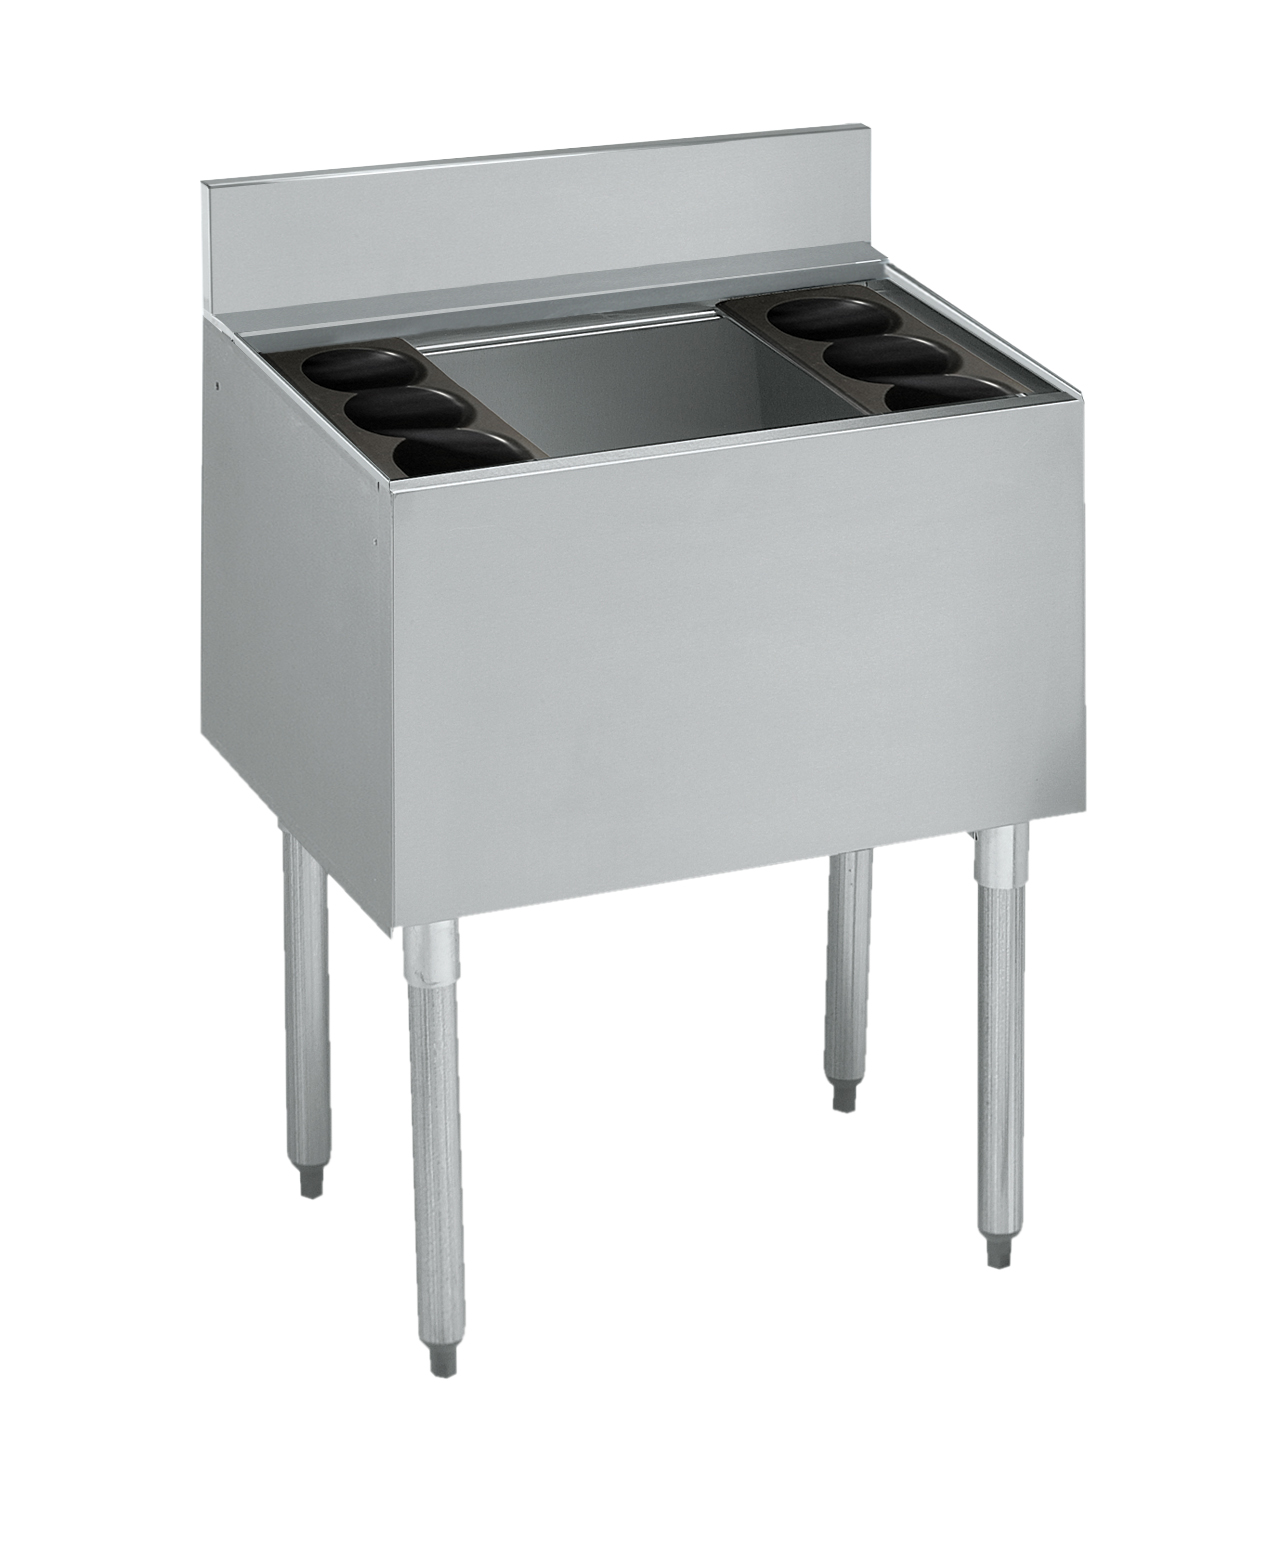 Krowne Metal 21-24DP-7 underbar ice bin/cocktail unit